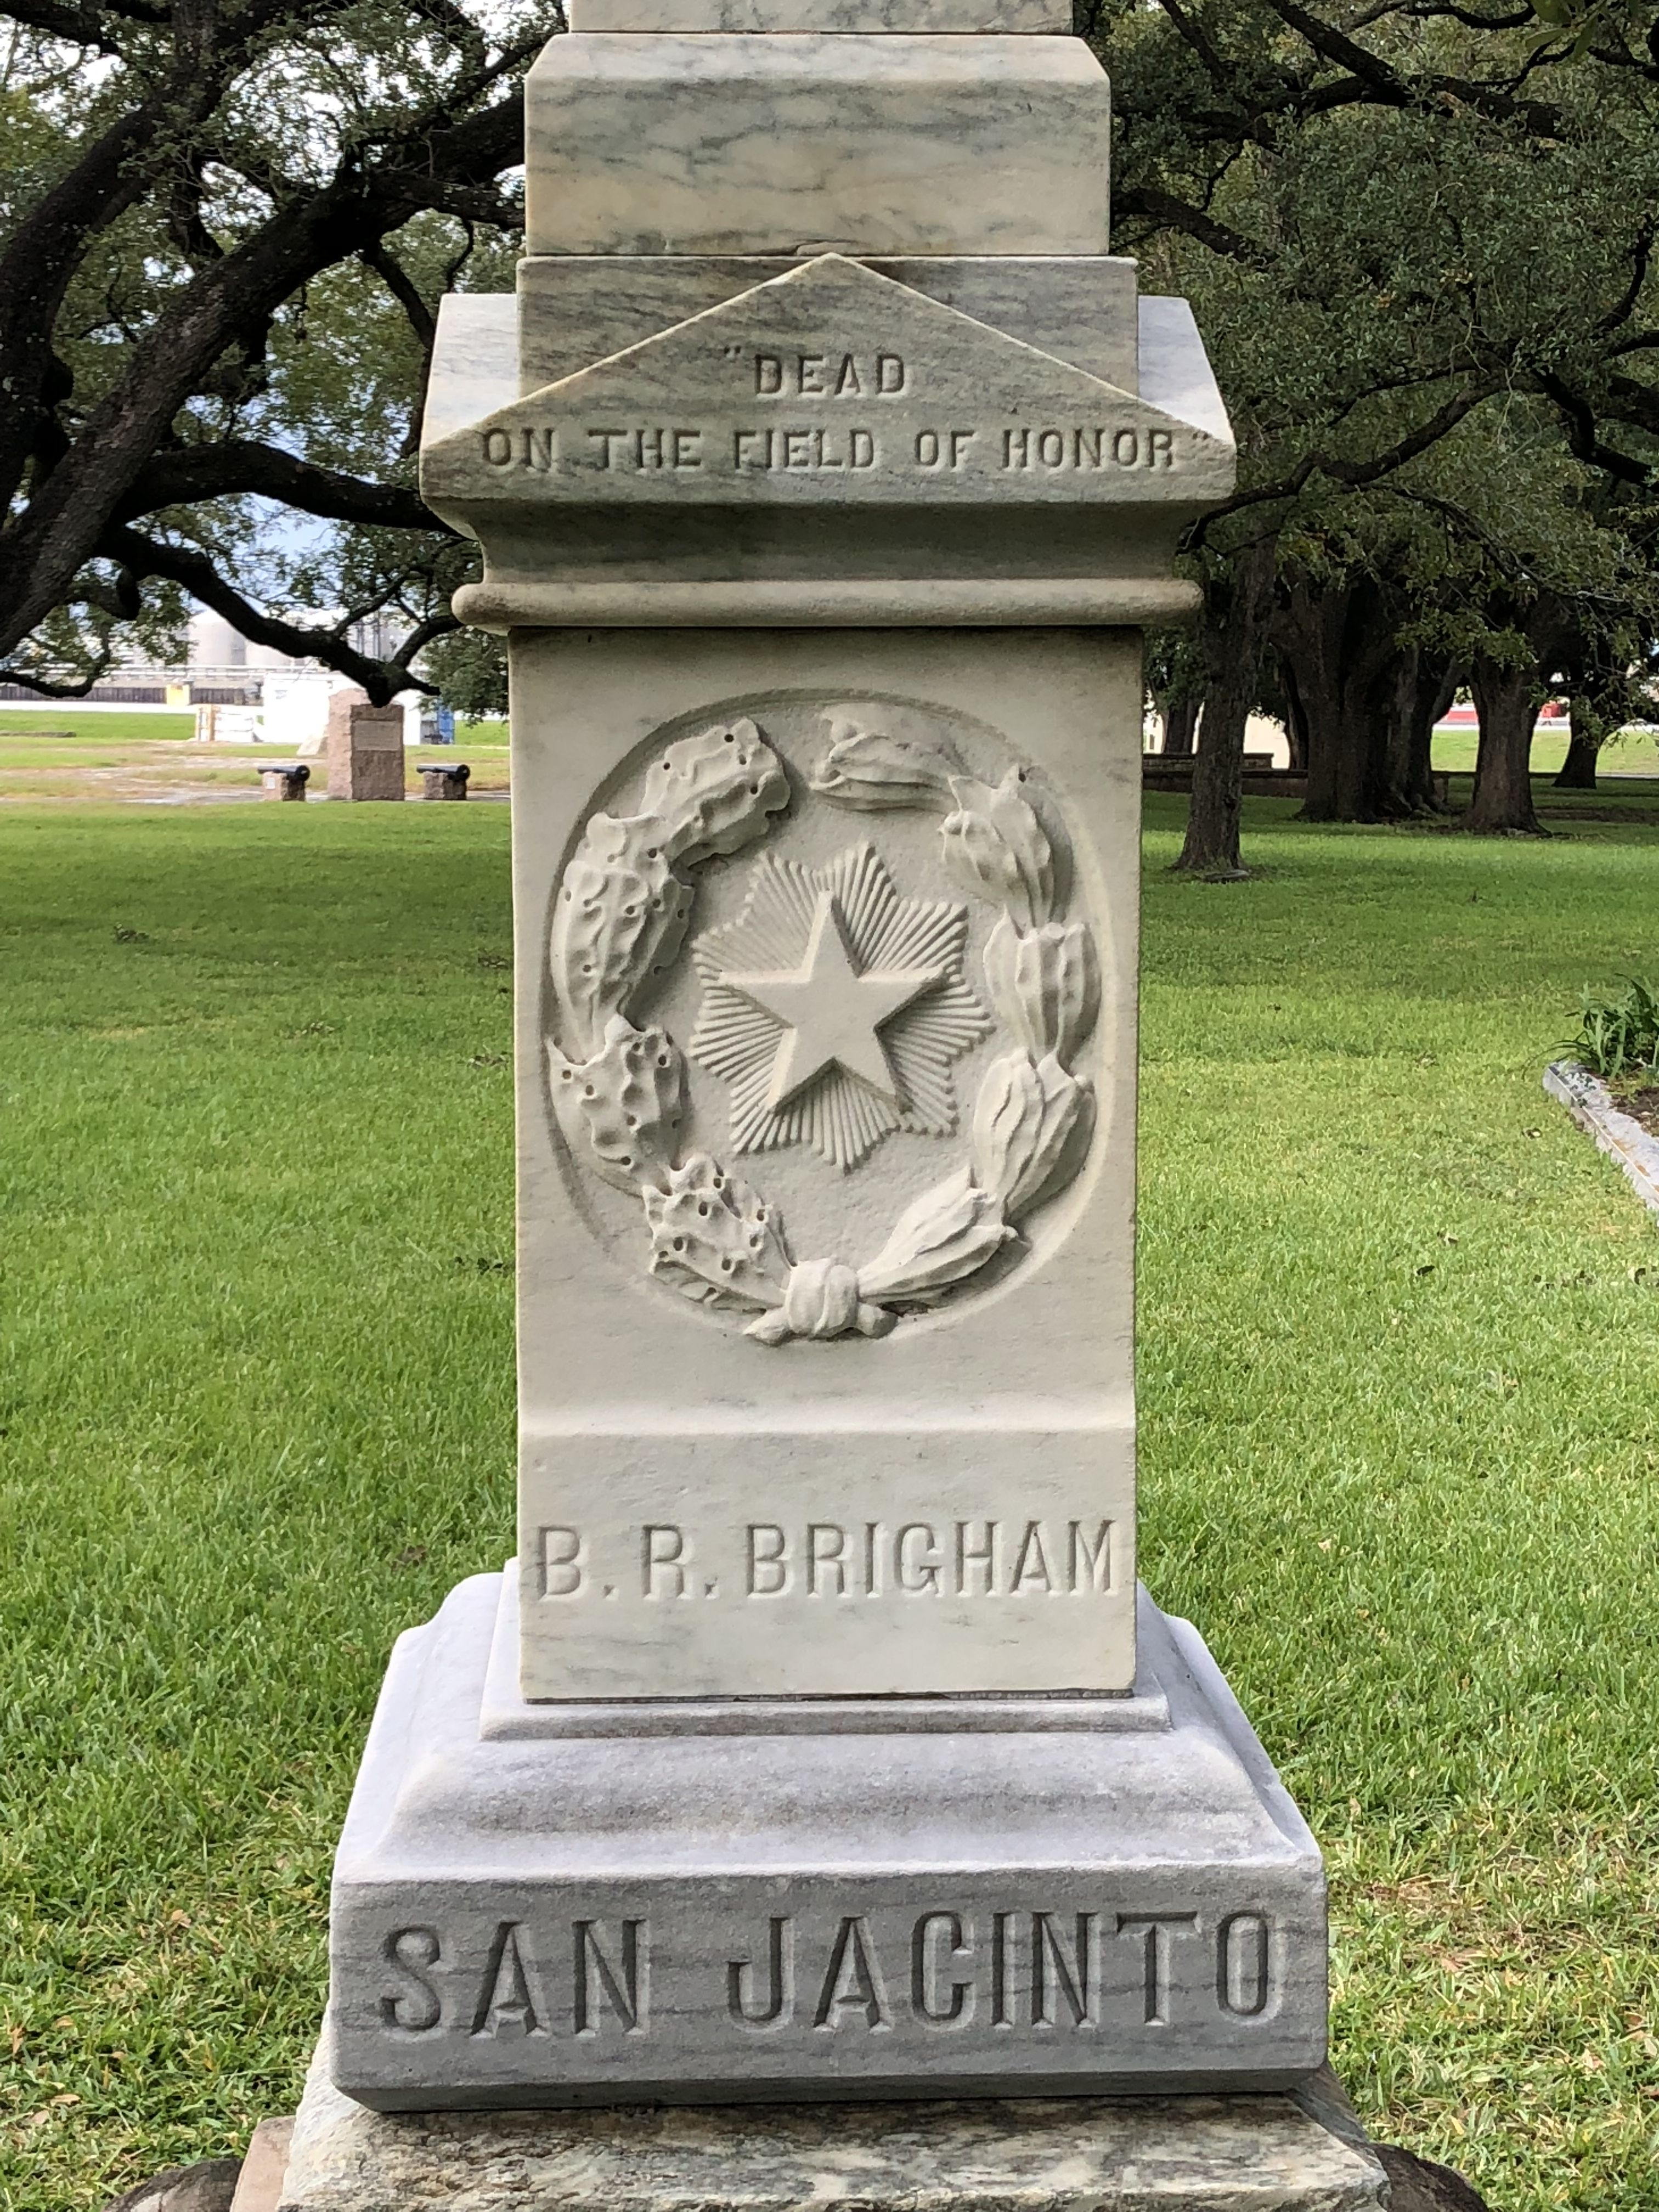 The B. R. Brigham Monument East Side